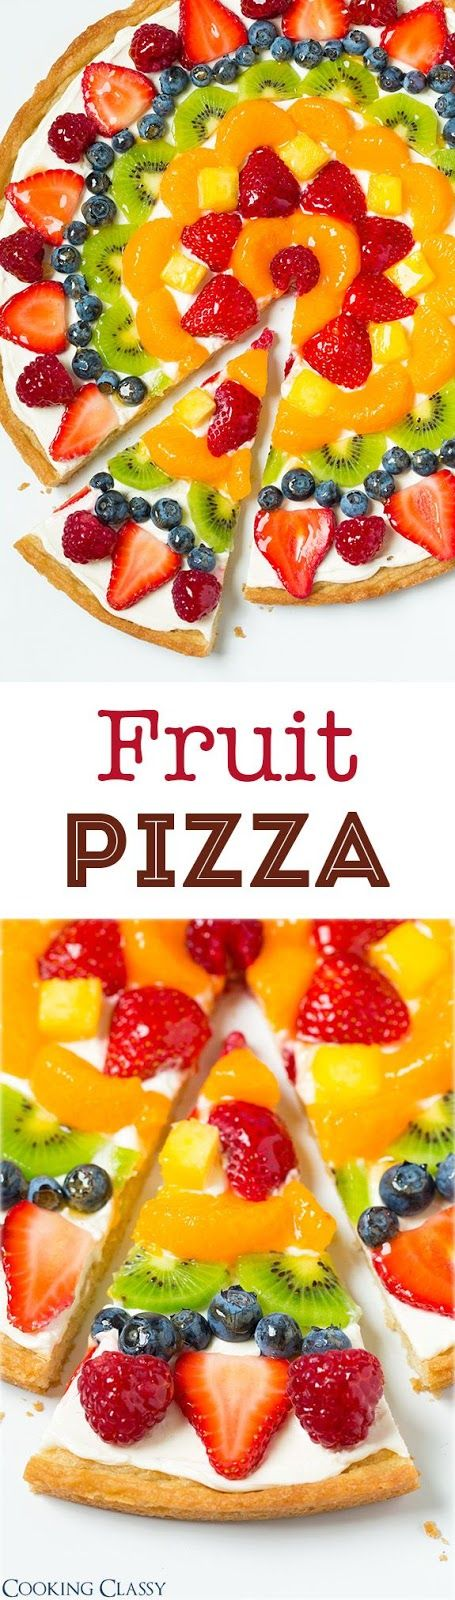 New Food & drink: Fruit Pizza